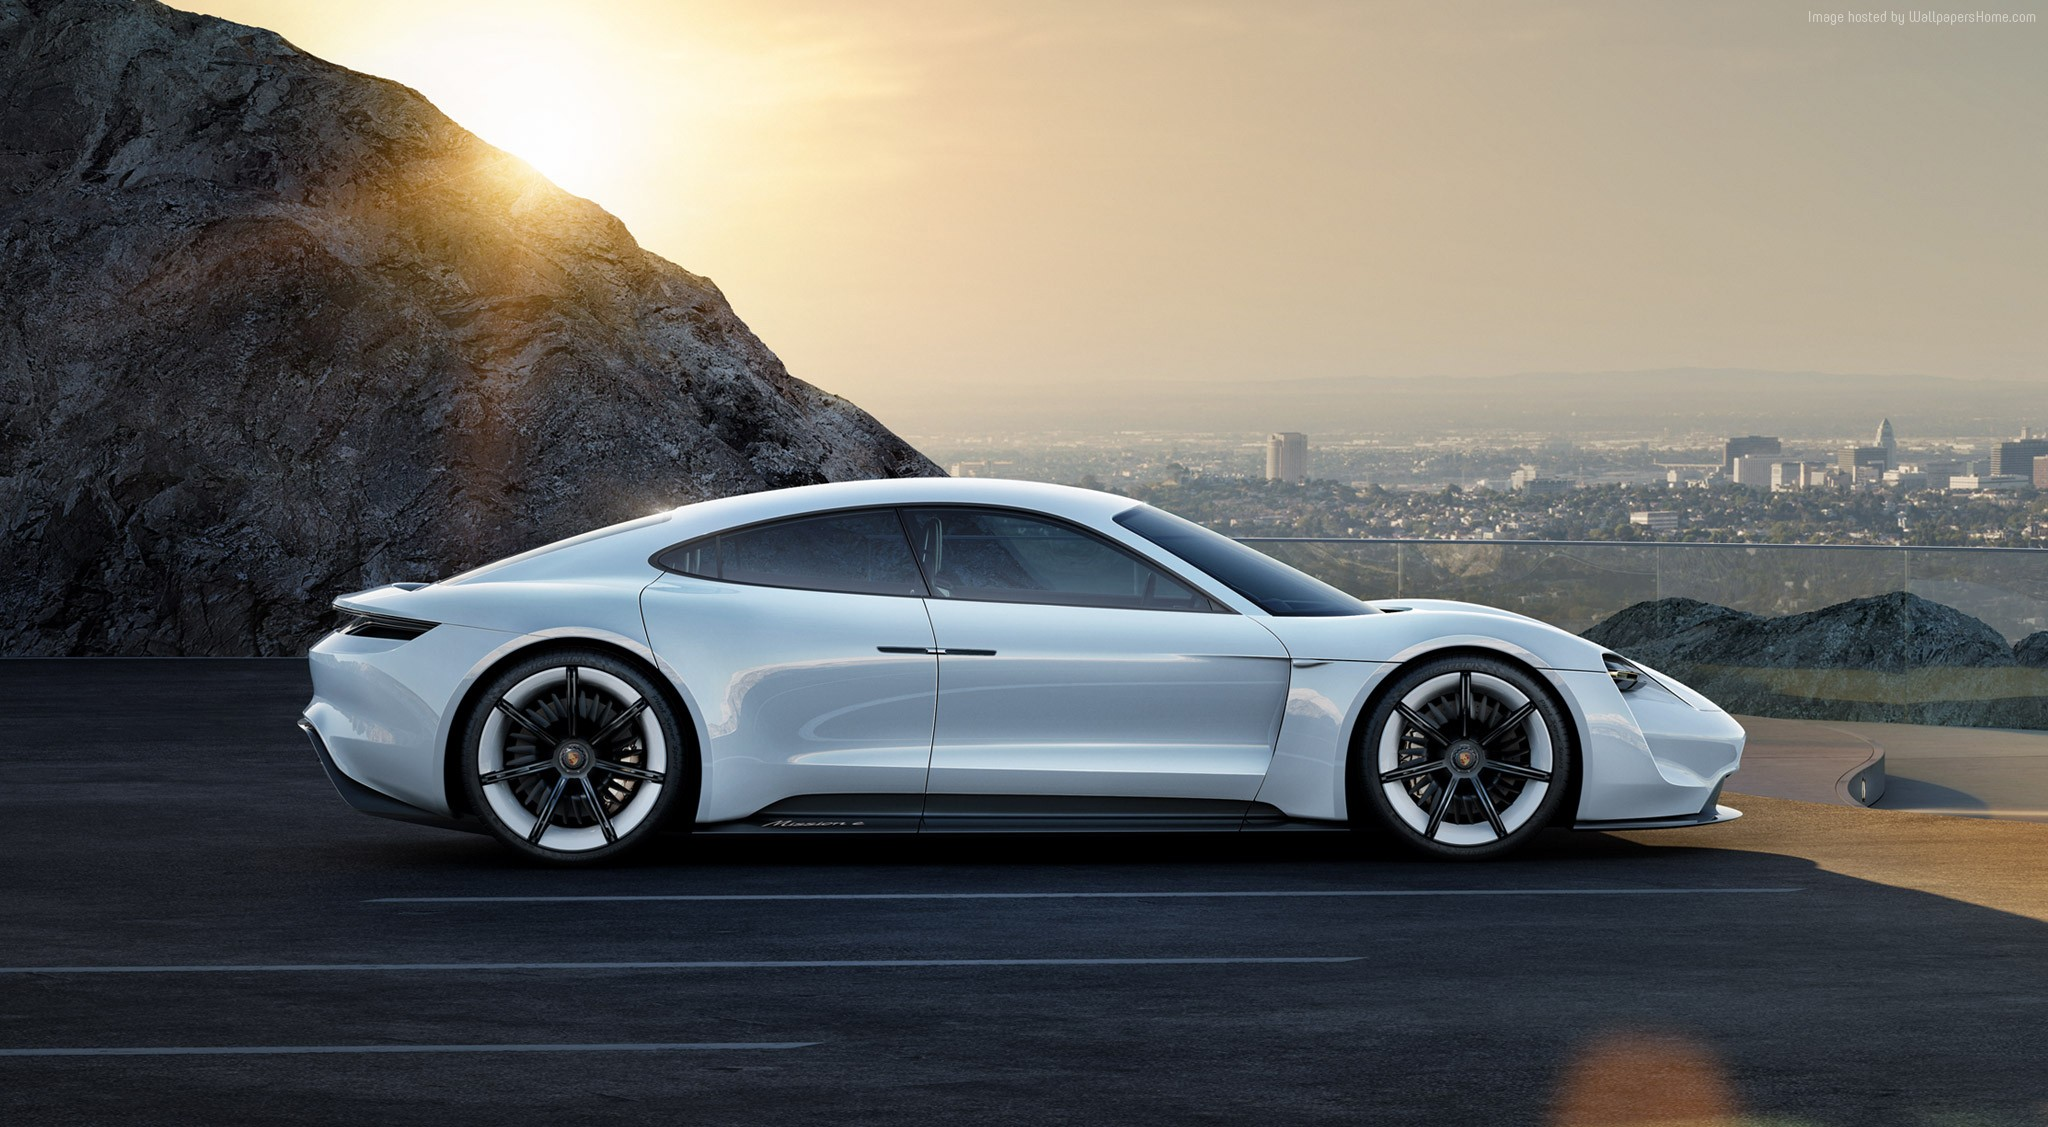 100907 white supercar Porsche Taycan 800v Electric Cars 2048x1127